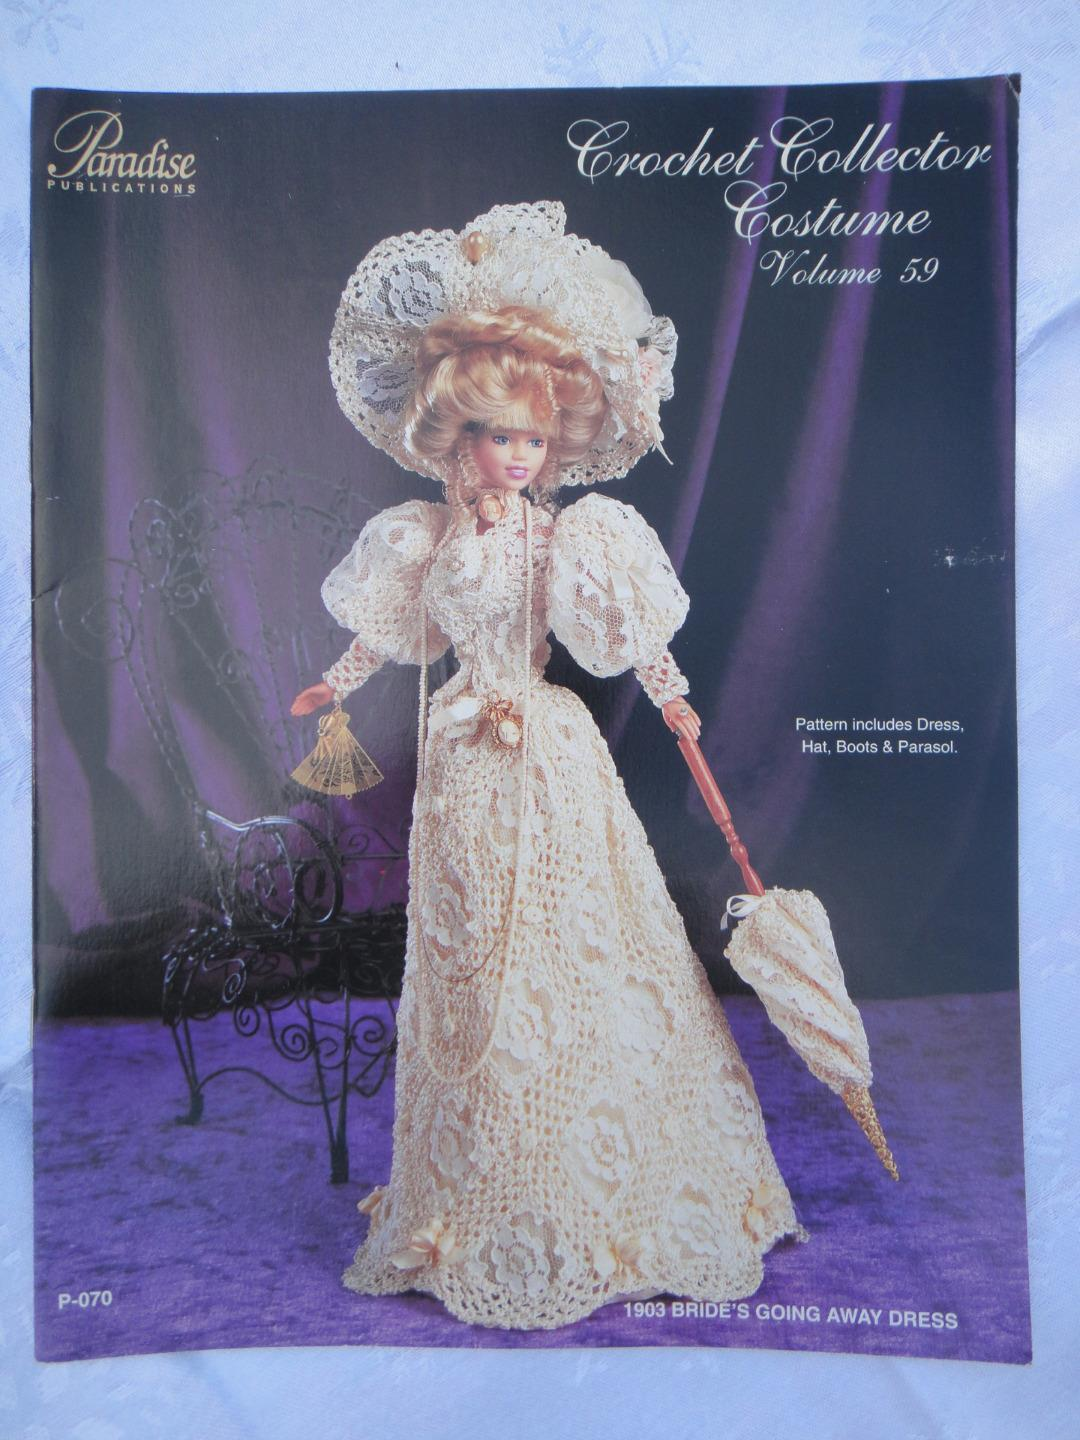 "Primary image for Paradise Crochet 11 1/2"" Doll Pattern 1903 BRIDES GOING AWAY DRESS P-070"